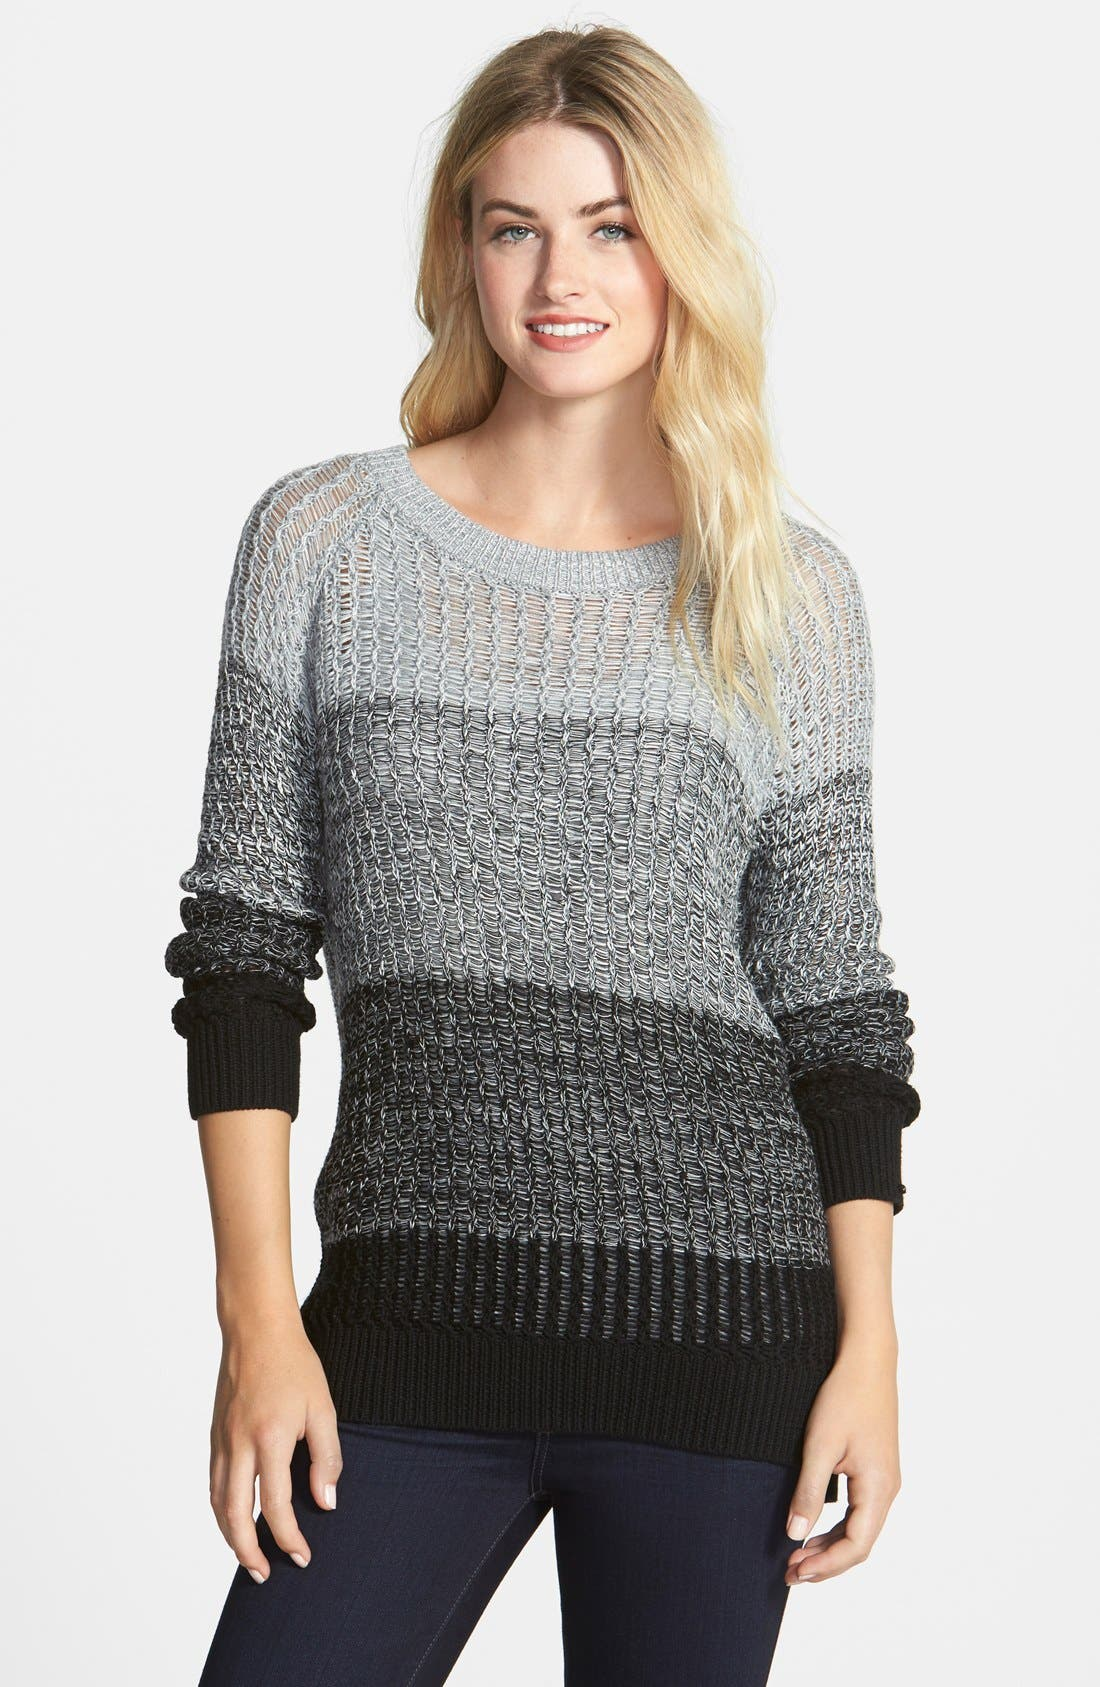 Alternate Image 1 Selected - Two by Vince Camuto Ombré Stripe Shaker Sweater